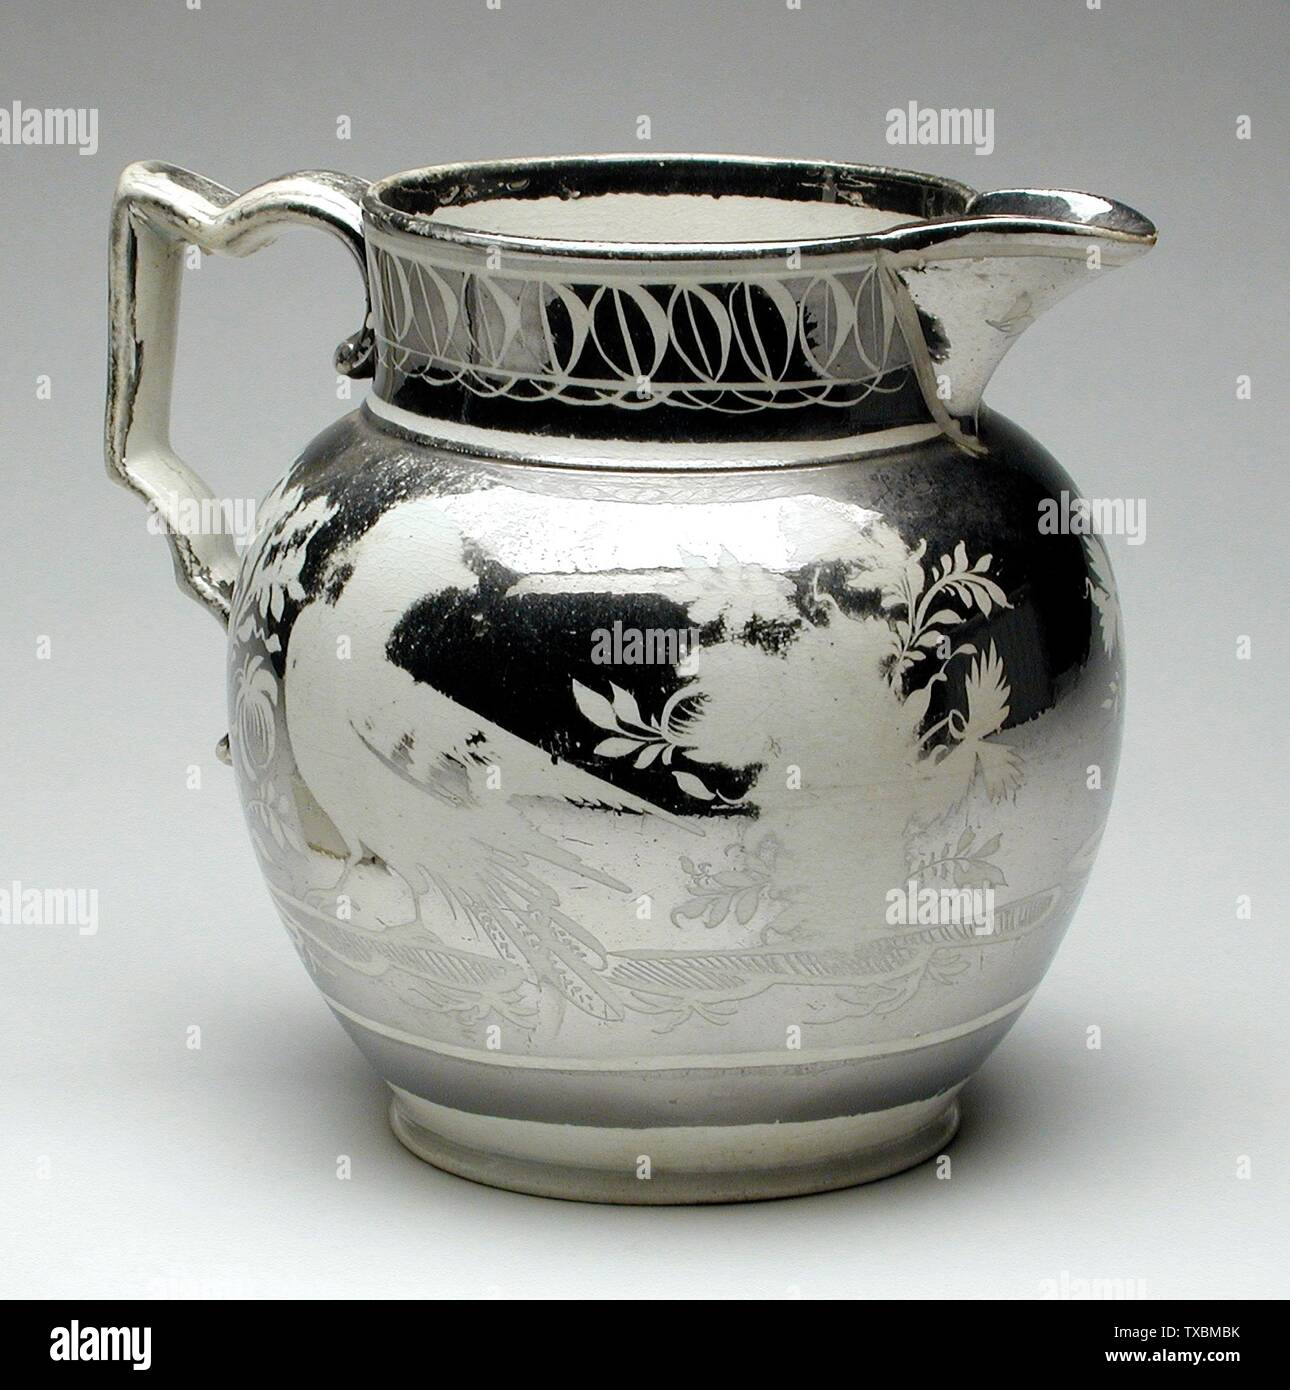 'Pitcher; English:  England, 1820 Furnishings; Serviceware Porcelain (creamware), lustre Height:  5 1/2 in. (13.97 cm); Diameter:  6 1/2 in. (16.51 cm) Gift of Mrs. Anna Bing Arnold (M.73.28.6) Decorative Arts and Design; 1820date QS:P571,+1820-00-00T00:00:00Z/9; ' - Stock Image